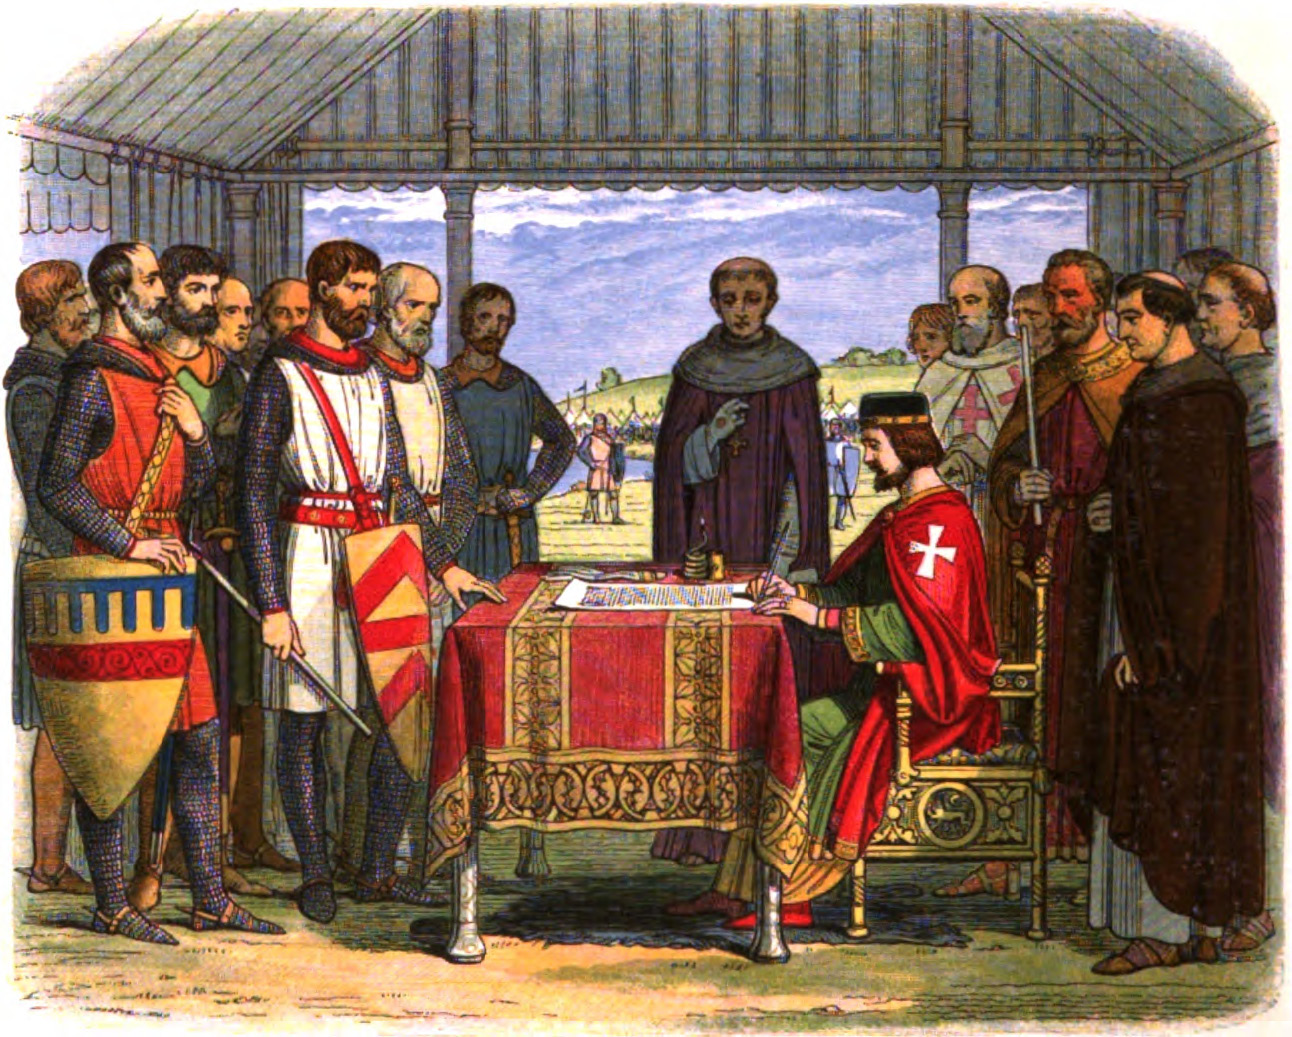 Artist's impression of the signing of Magna Carta